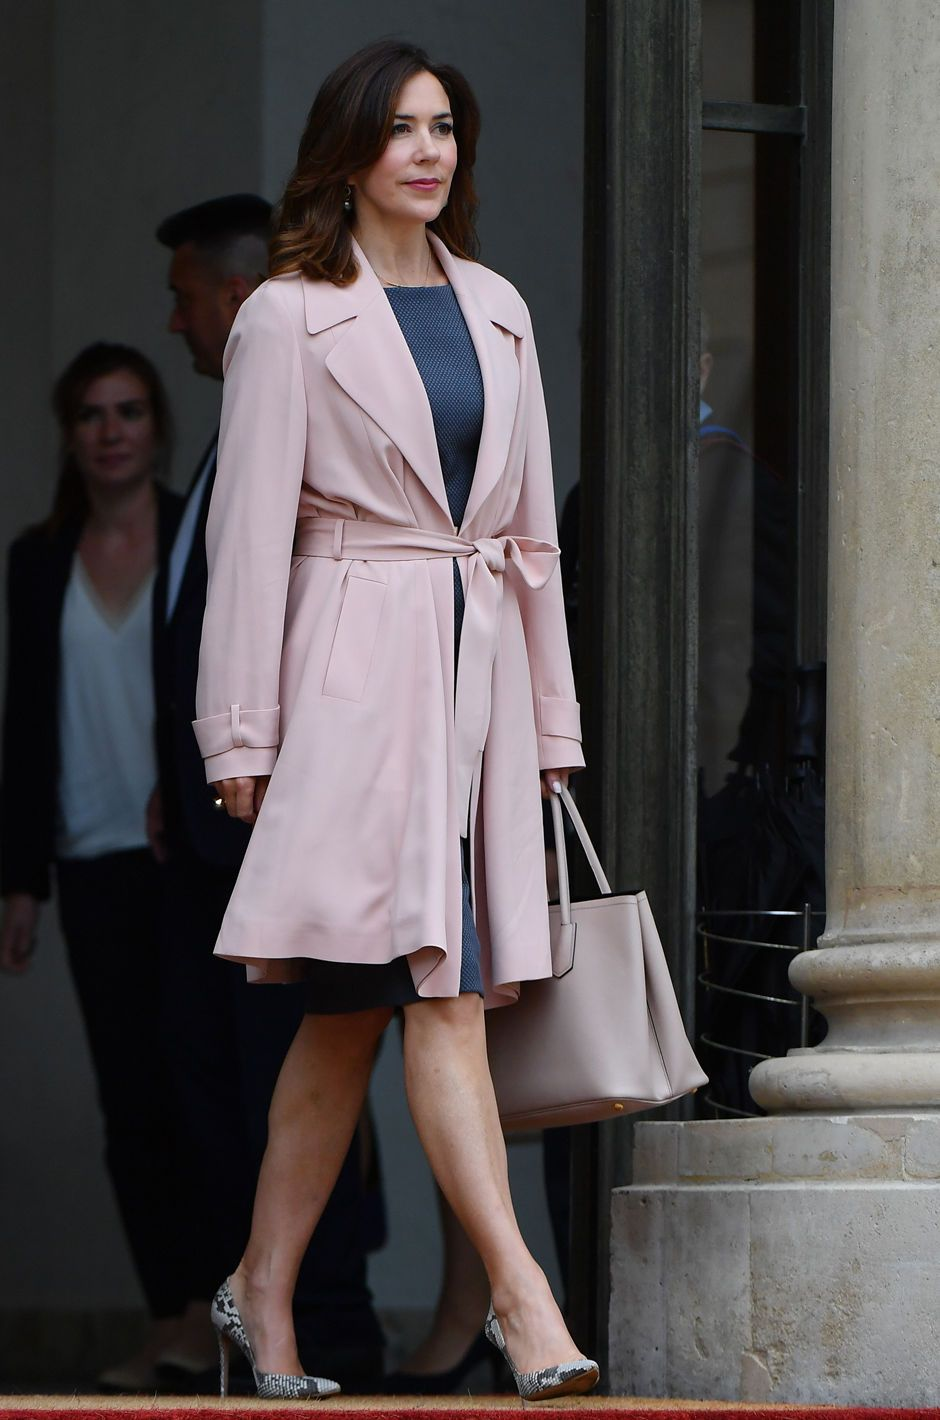 Crown Princess Mary of Denmark arrives at the Elysee palace for a meeting with French president's wife Brigitte Macron after a meeting on climate change, on June 6, 2017 in Paris.